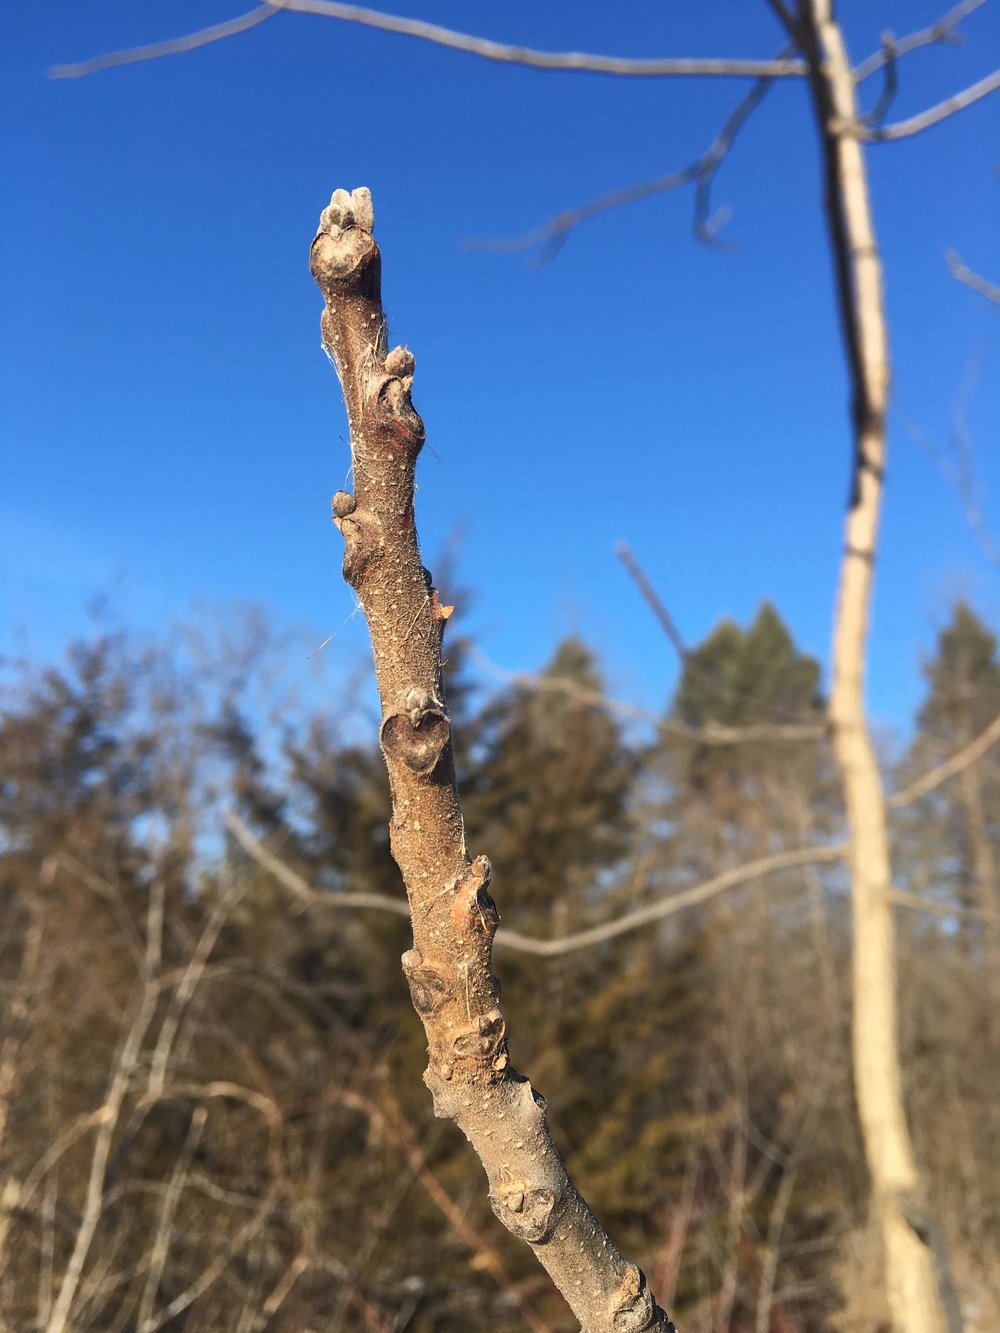 Black walnut ( Juglans nigra ) has light brown, fuzzy winter buds. The leaf scar is said to resemble a monkey face. Note the alternate arrangement of the buds.